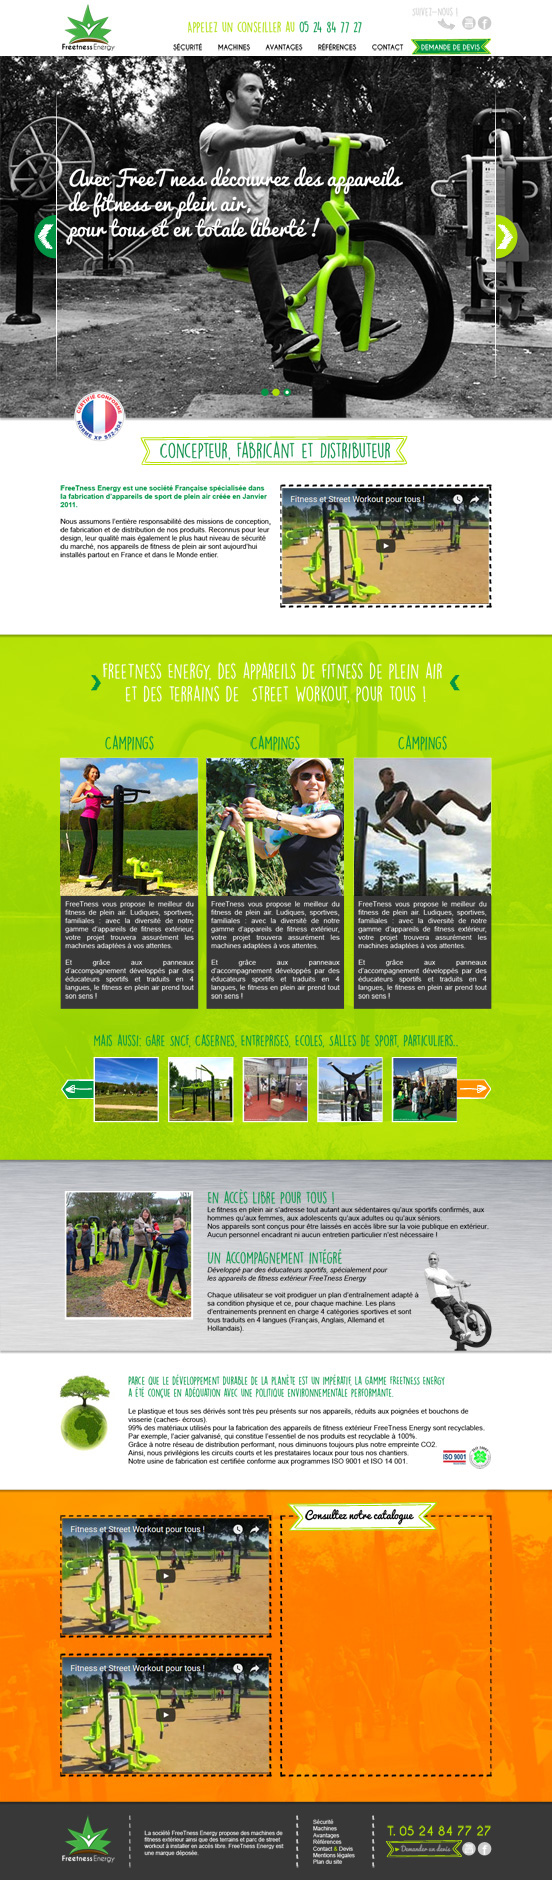 webdesign-freetness-energy-jordan-gentes